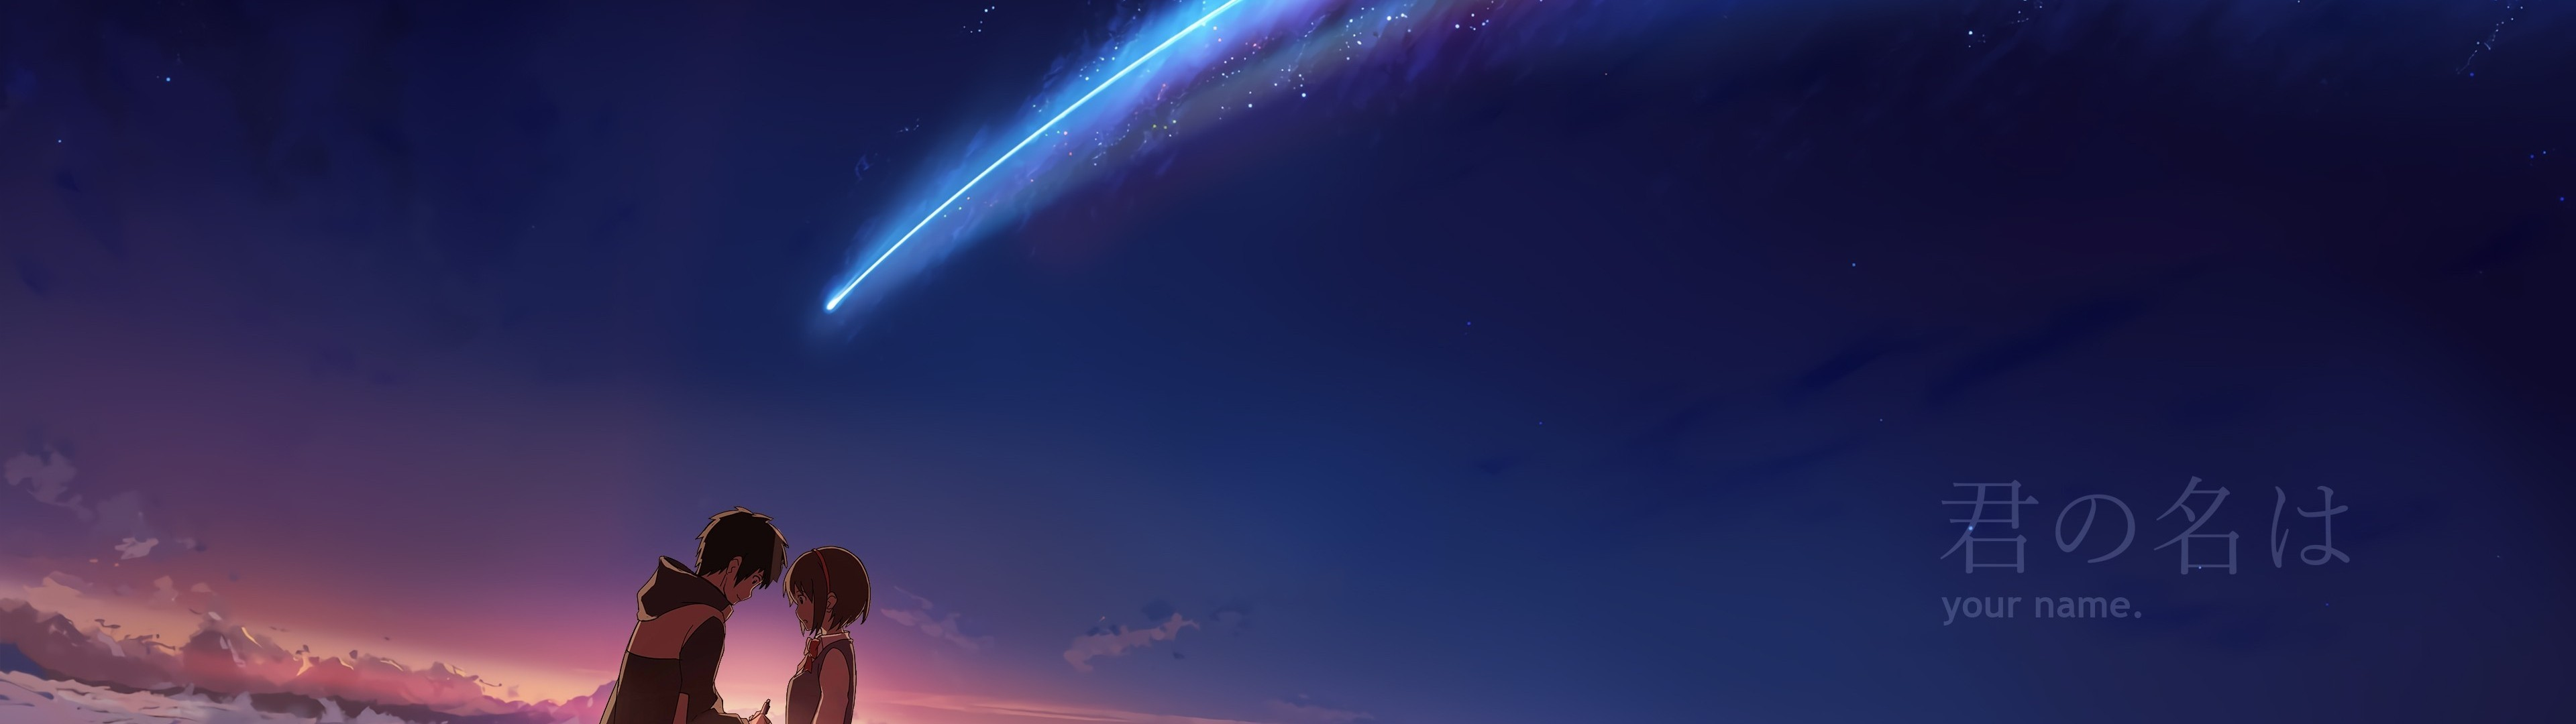 3840 X 1080 Your Name 2238534 Hd Wallpaper Backgrounds Download